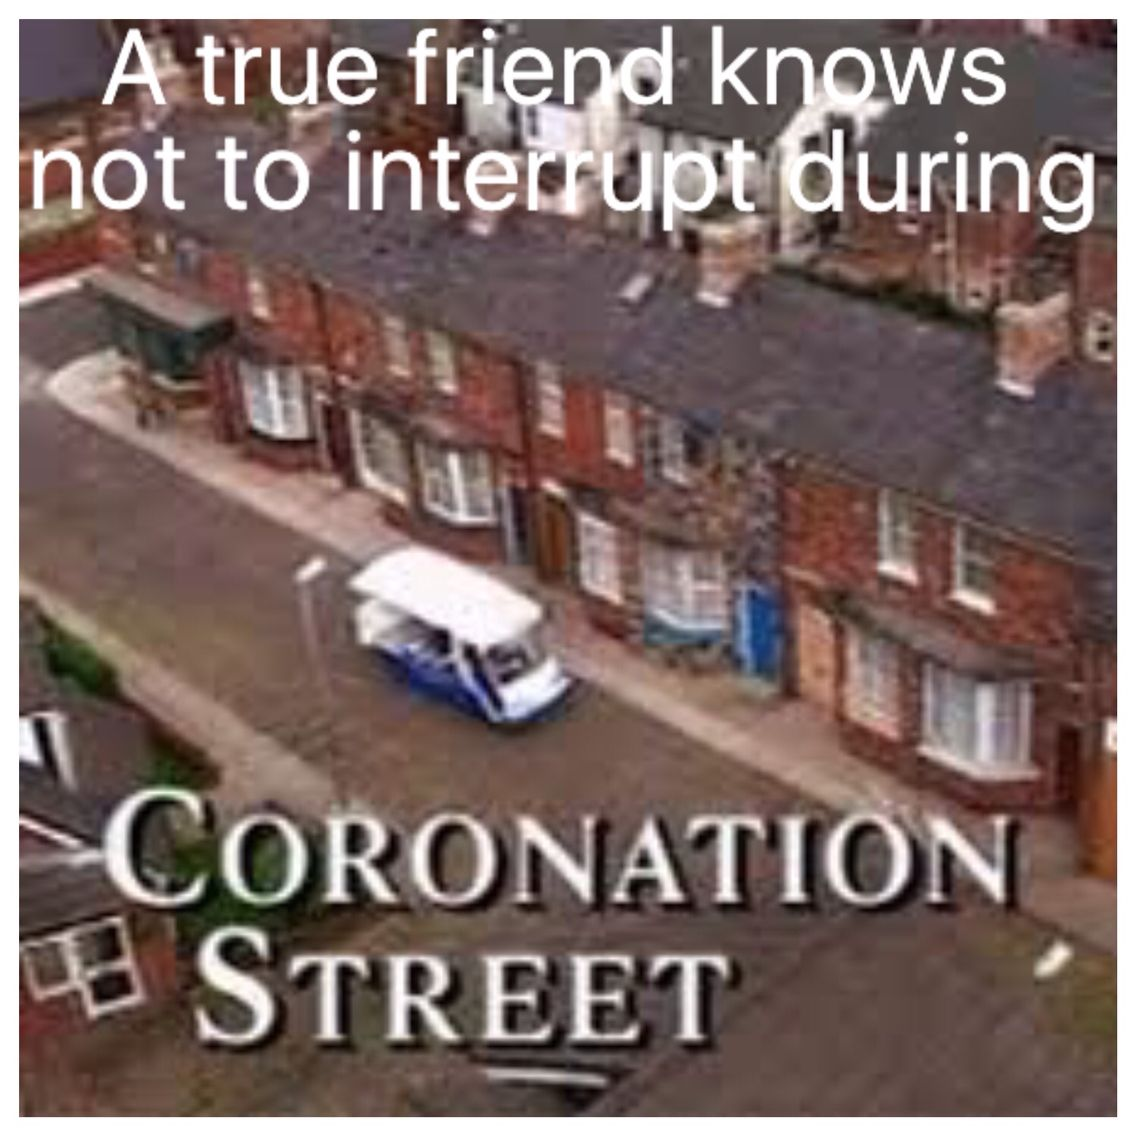 Coronation Street.  Began 1960.  In the 1980's this was my very favourite show, when it was about everyday life in a town near Manchester, England.  Then it turned into a less realistic soap opera.  https://en.wikipedia.org/wiki/Coronation_Street.  Only 5.8 on imdb http://www.imdb.com/title/tt0053494/?ref_=fn_al_tt_1.  There are summaries on http://coronationstreet.wikia.com/wiki/Category:2010s and www.corrie.net.